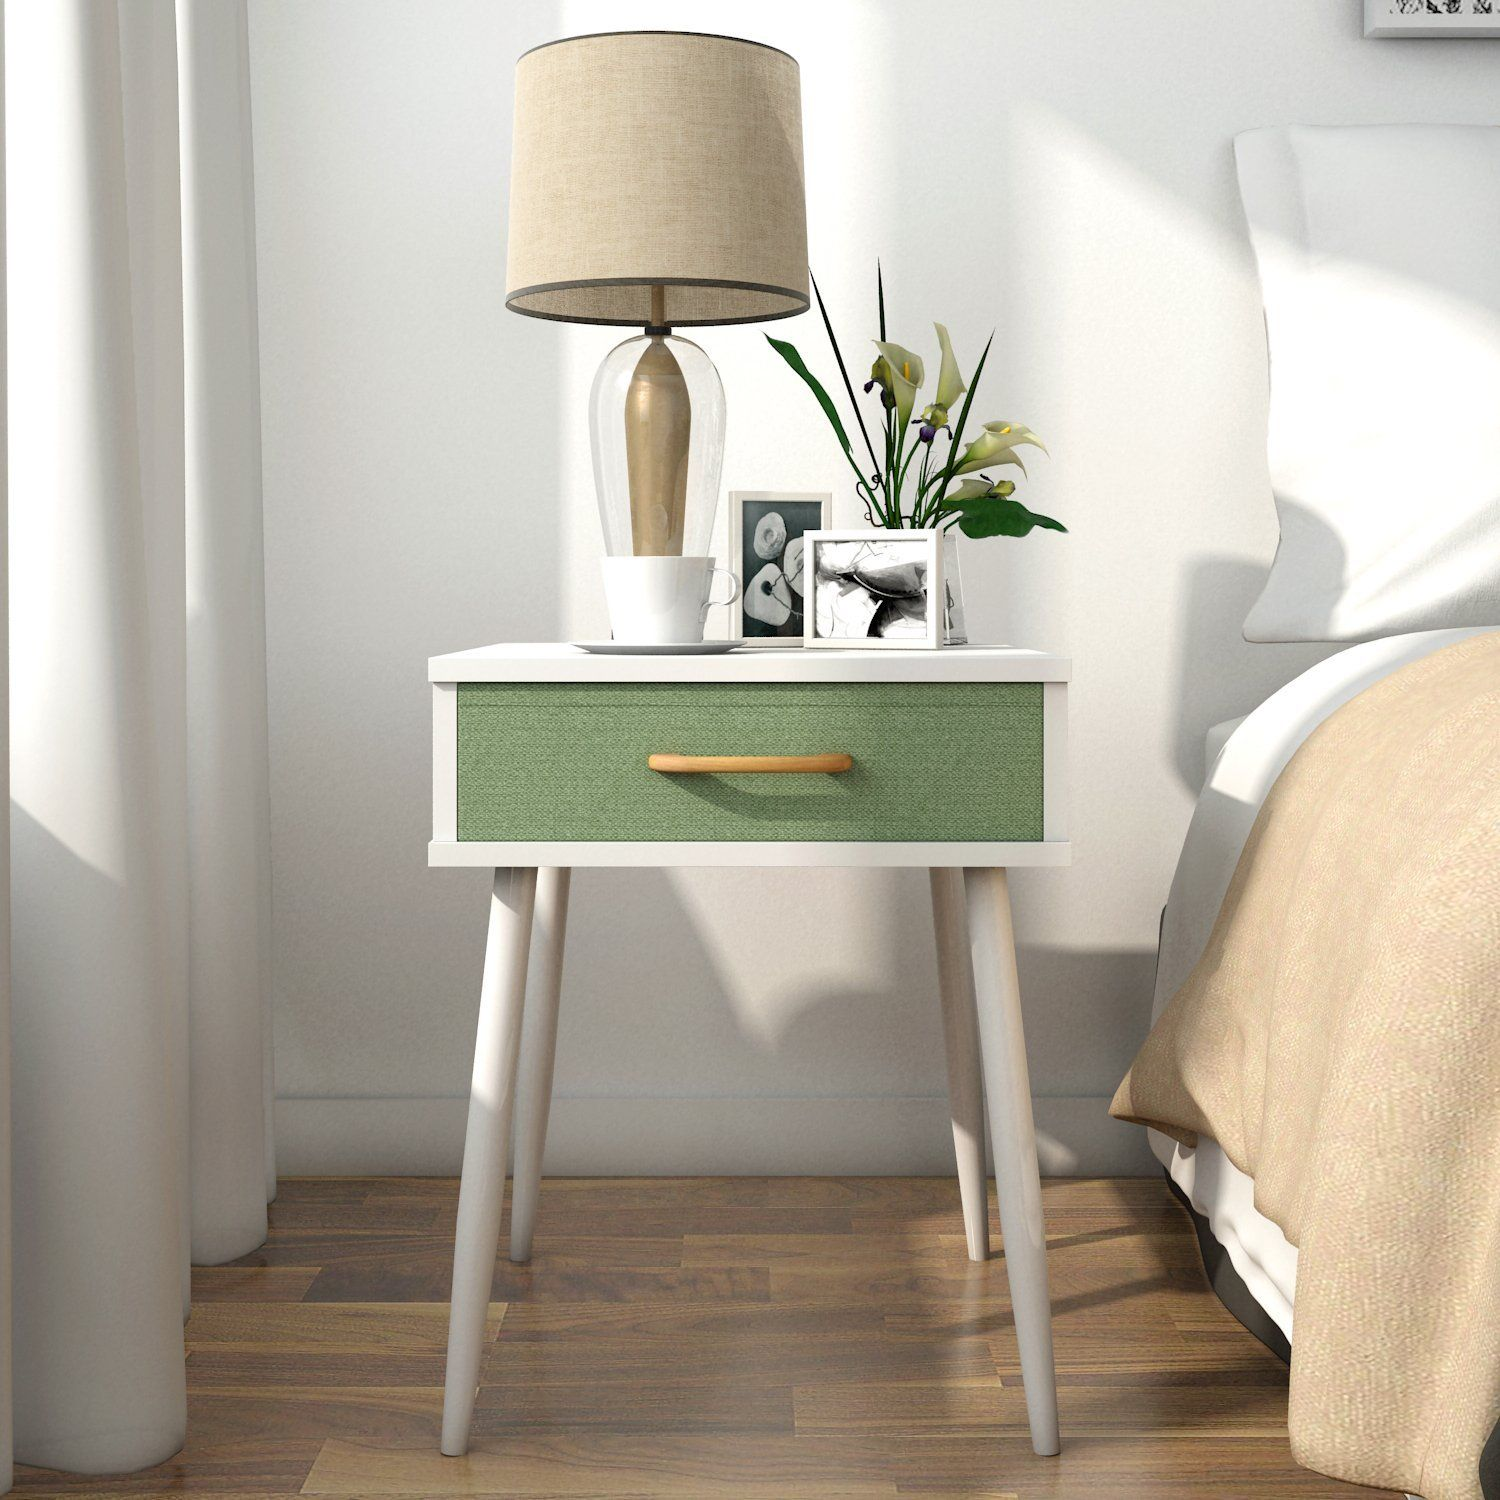 Lifewit Side End Table Nightstand Bedroom Living Room Table Cabinet